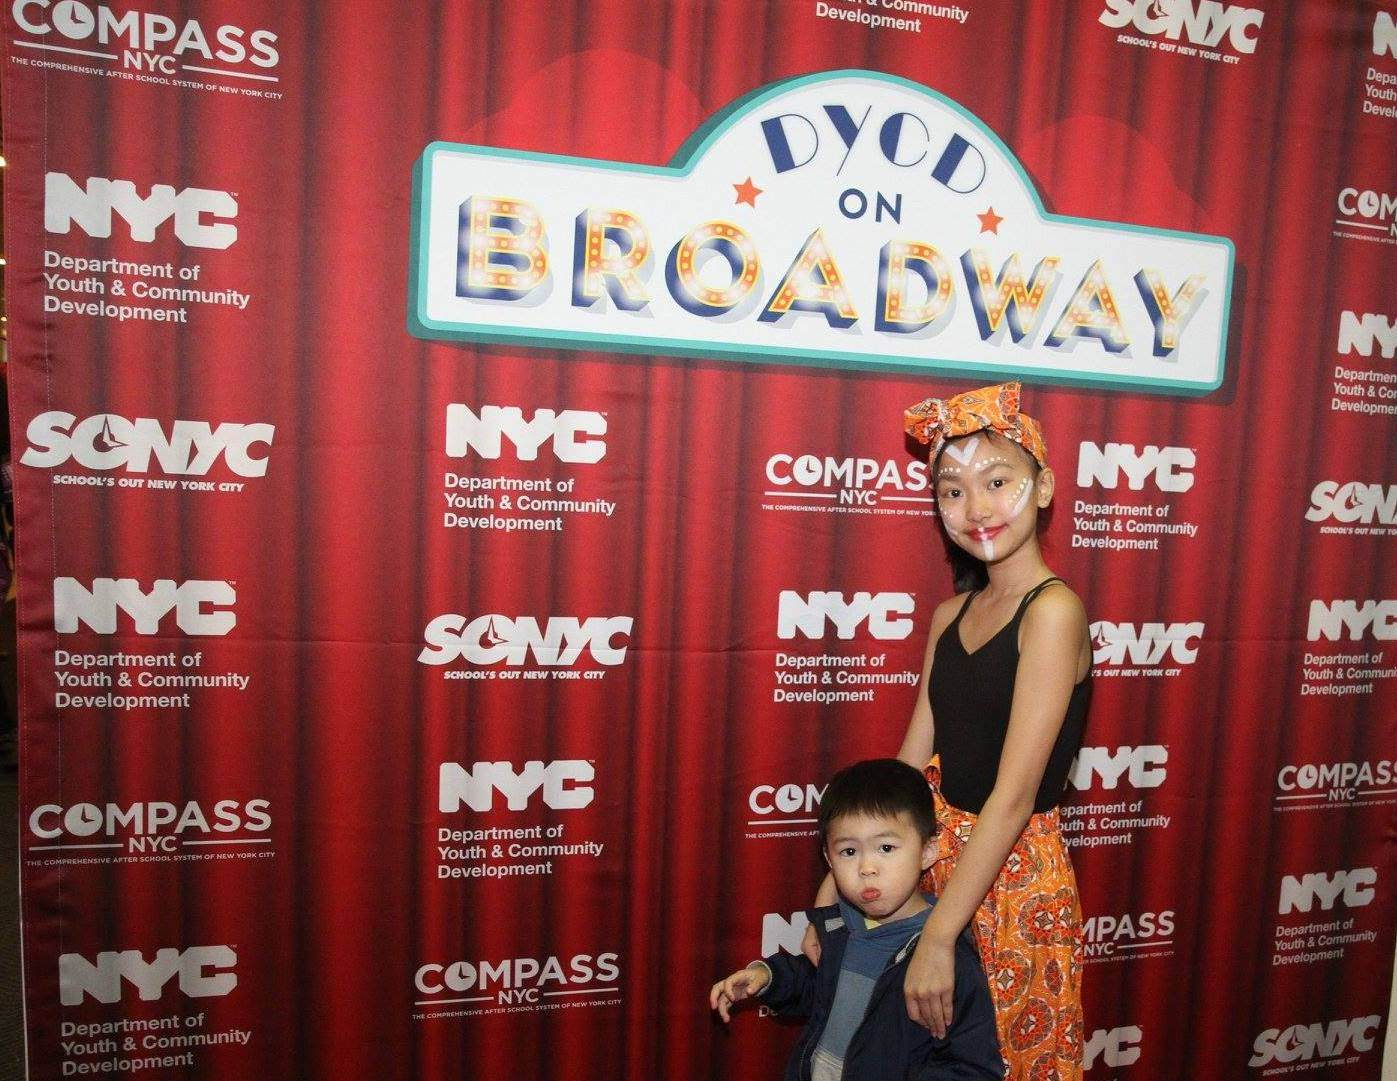 A young girl and small child pose in front of a red step and repeat designed to imitate red theatre stage curtains. The DYCD on Broadway logo is positioned high and centered on the step and repeat with the DYCD, SONYC, and COMPASS logos repeating in a pattern.